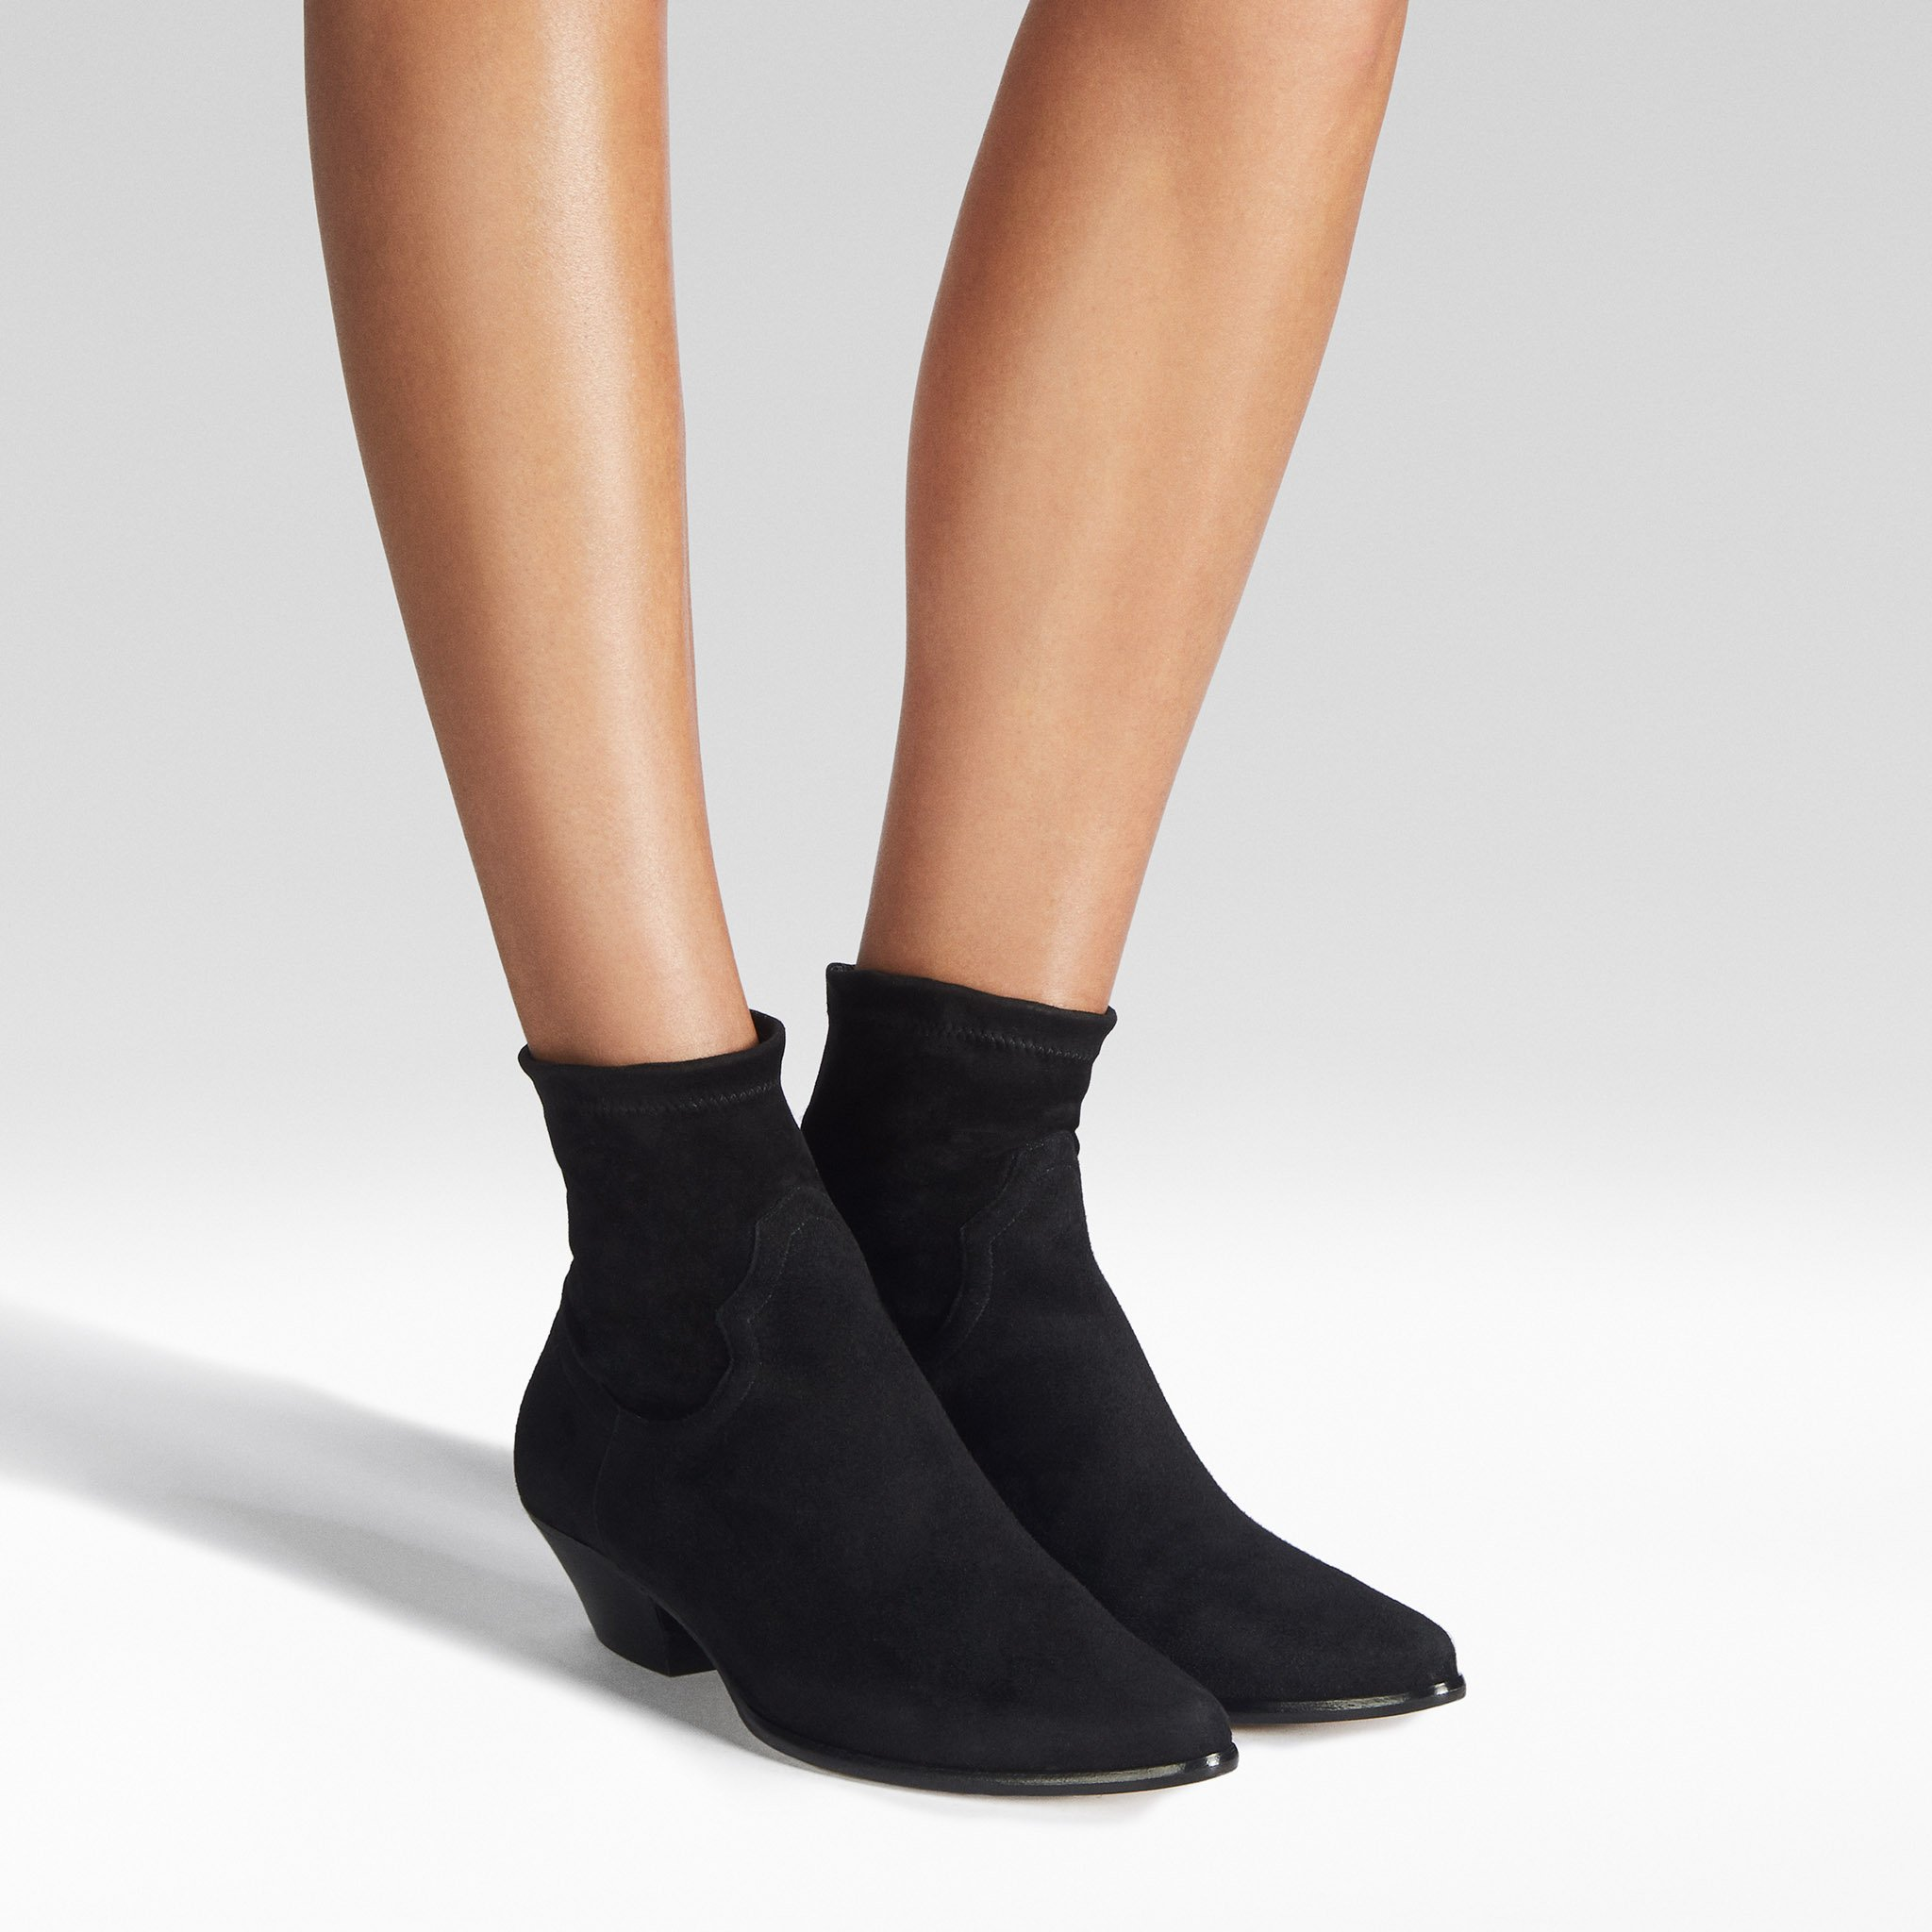 Tamara Mellon boots - stretch suede Go West ankle boots